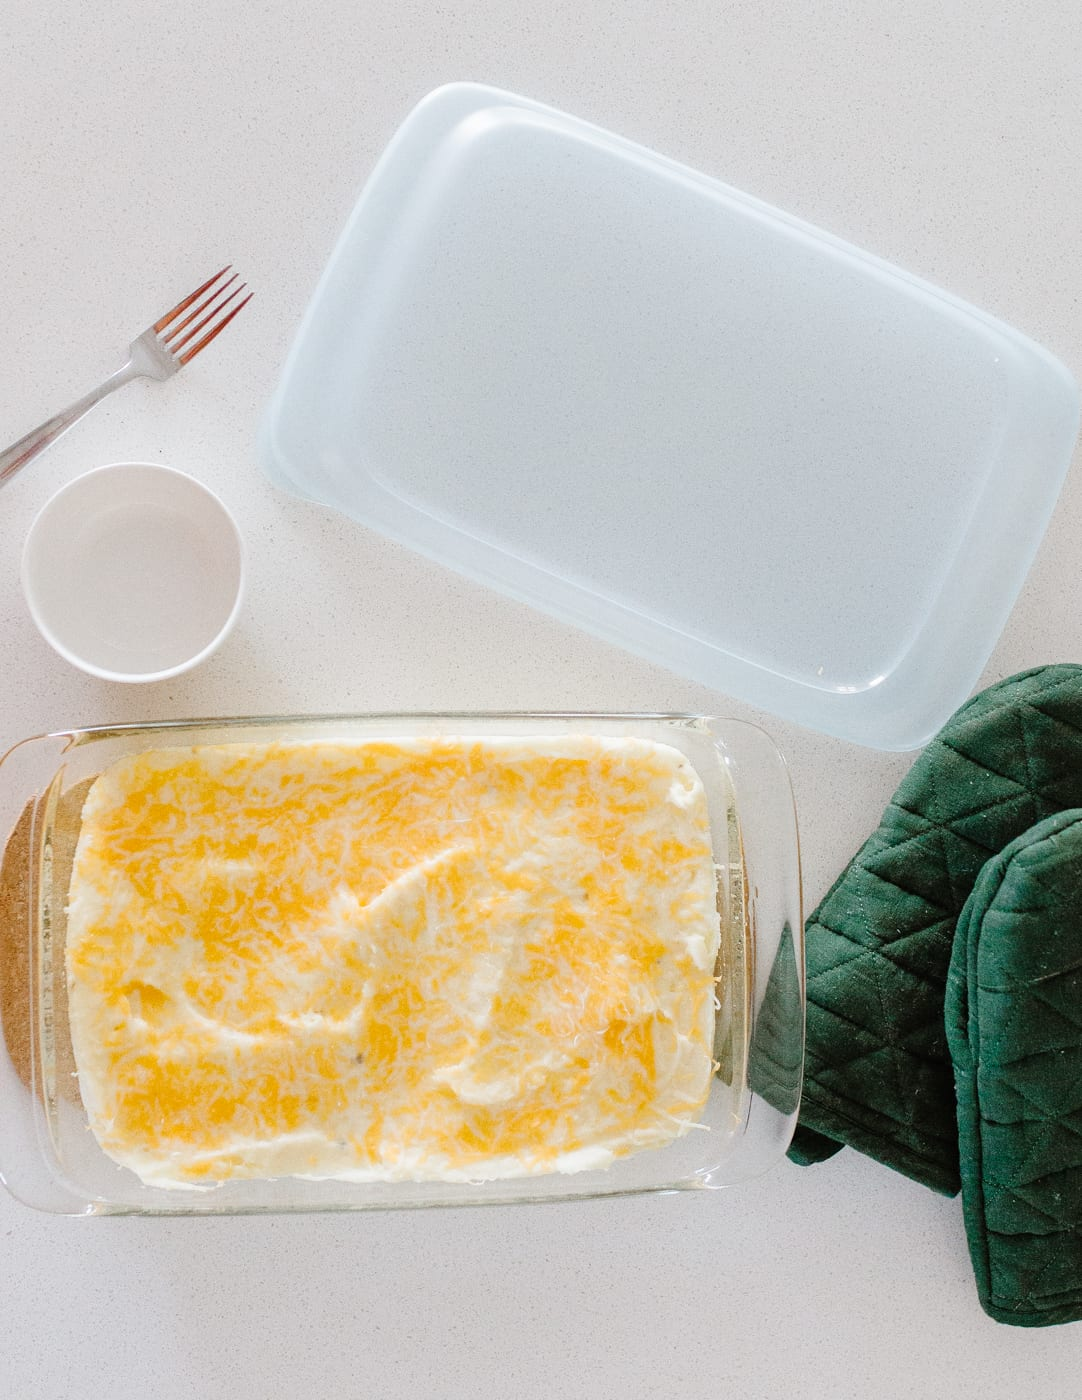 easy cheesy mashed potatoes with sour cream recipe for christmas or holiday dinners and events